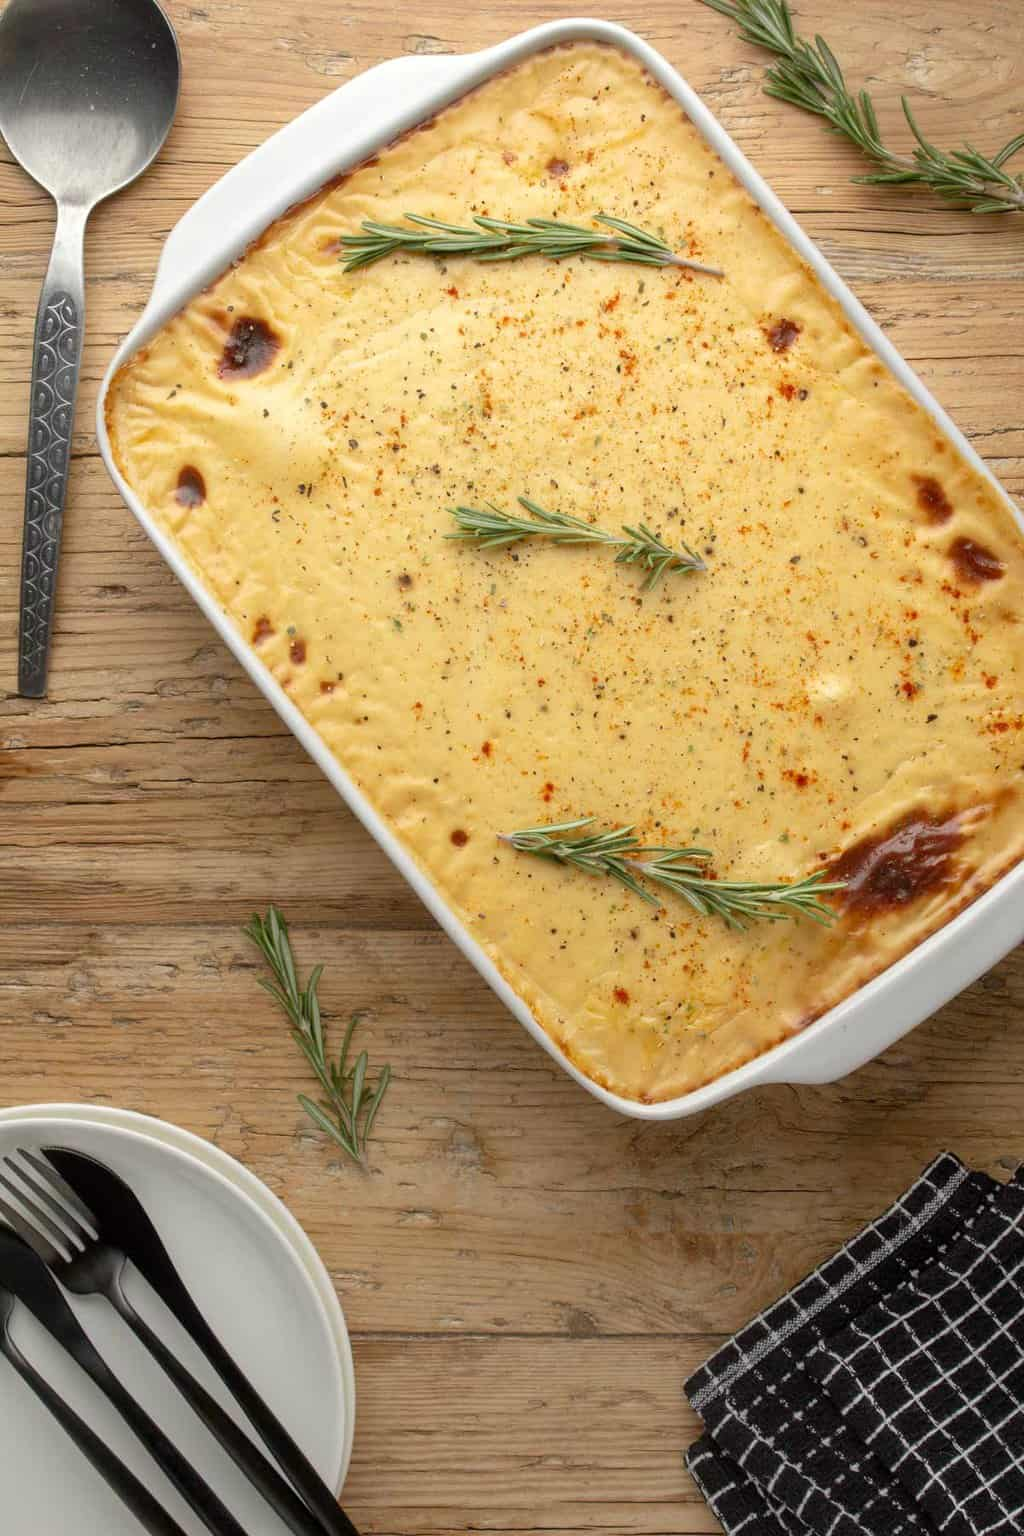 Vegan moussaka topped with fresh rosemary in a white baking dish.